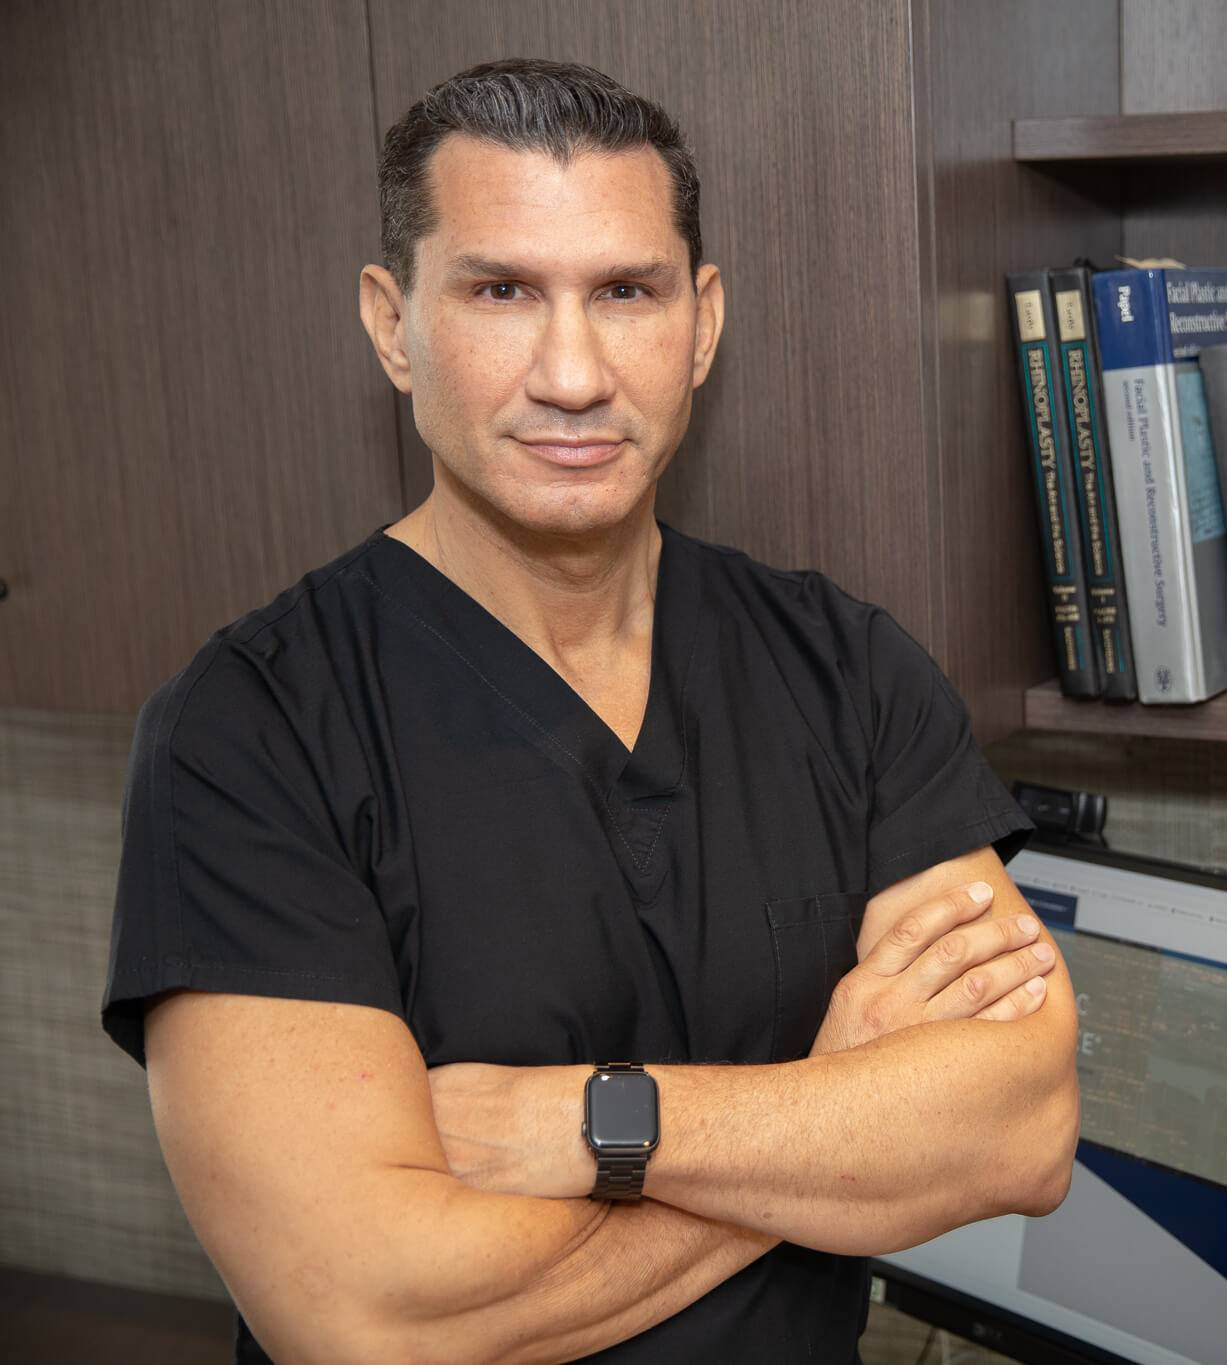 Dr. Miller New York City. NY - Top Facial Plastic Surgeon | Dr. Philip Miller